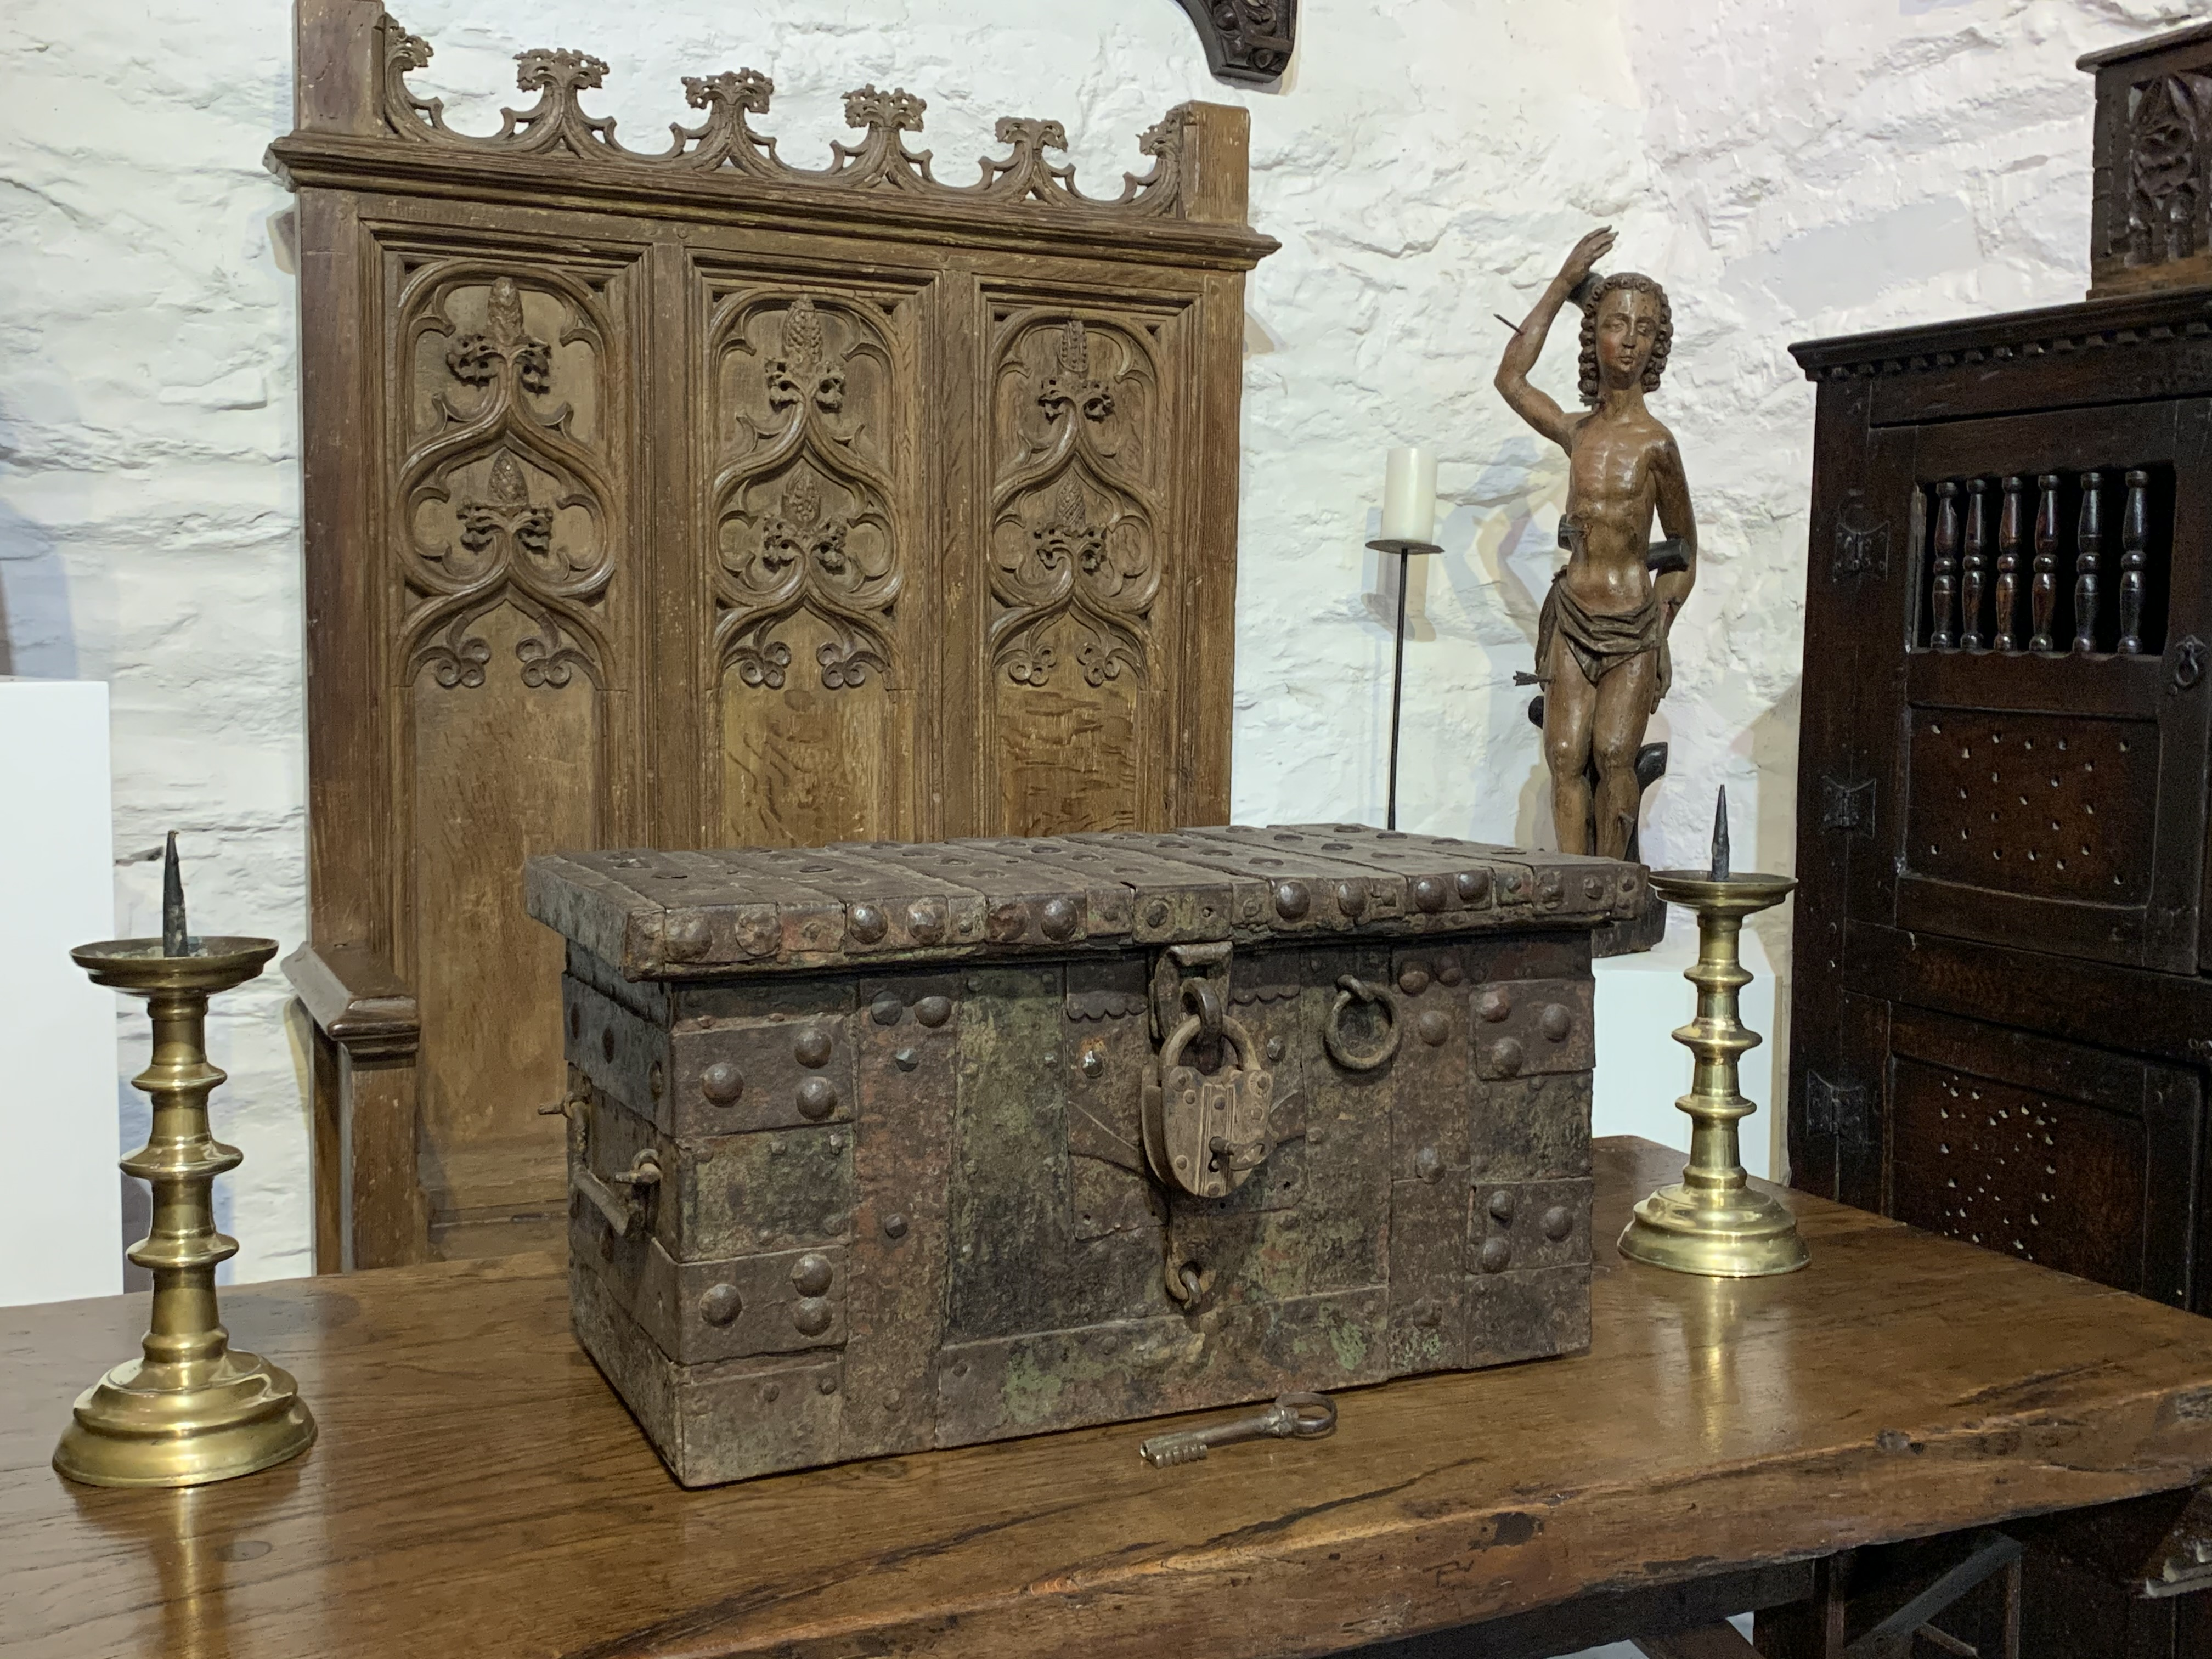 A LATE 15th / EARLY 16th CENTURY OAK AND IRONBOUND STRONG BOX. CIRCA 1500.